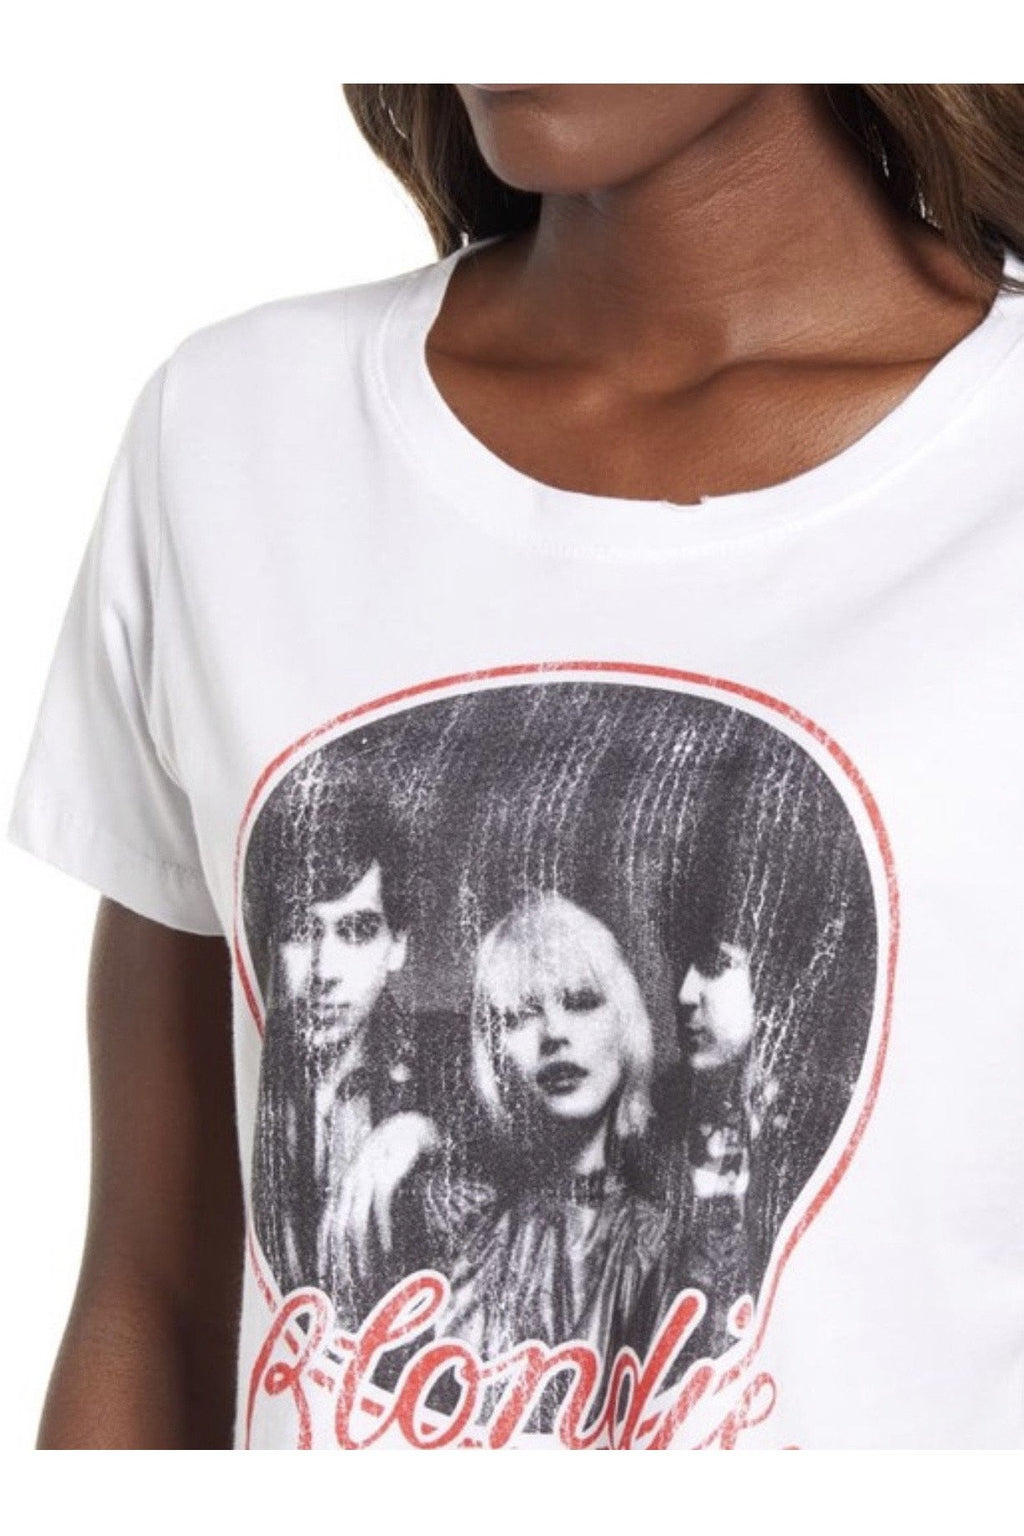 Blondie Tee X Prince Peter Collection $50